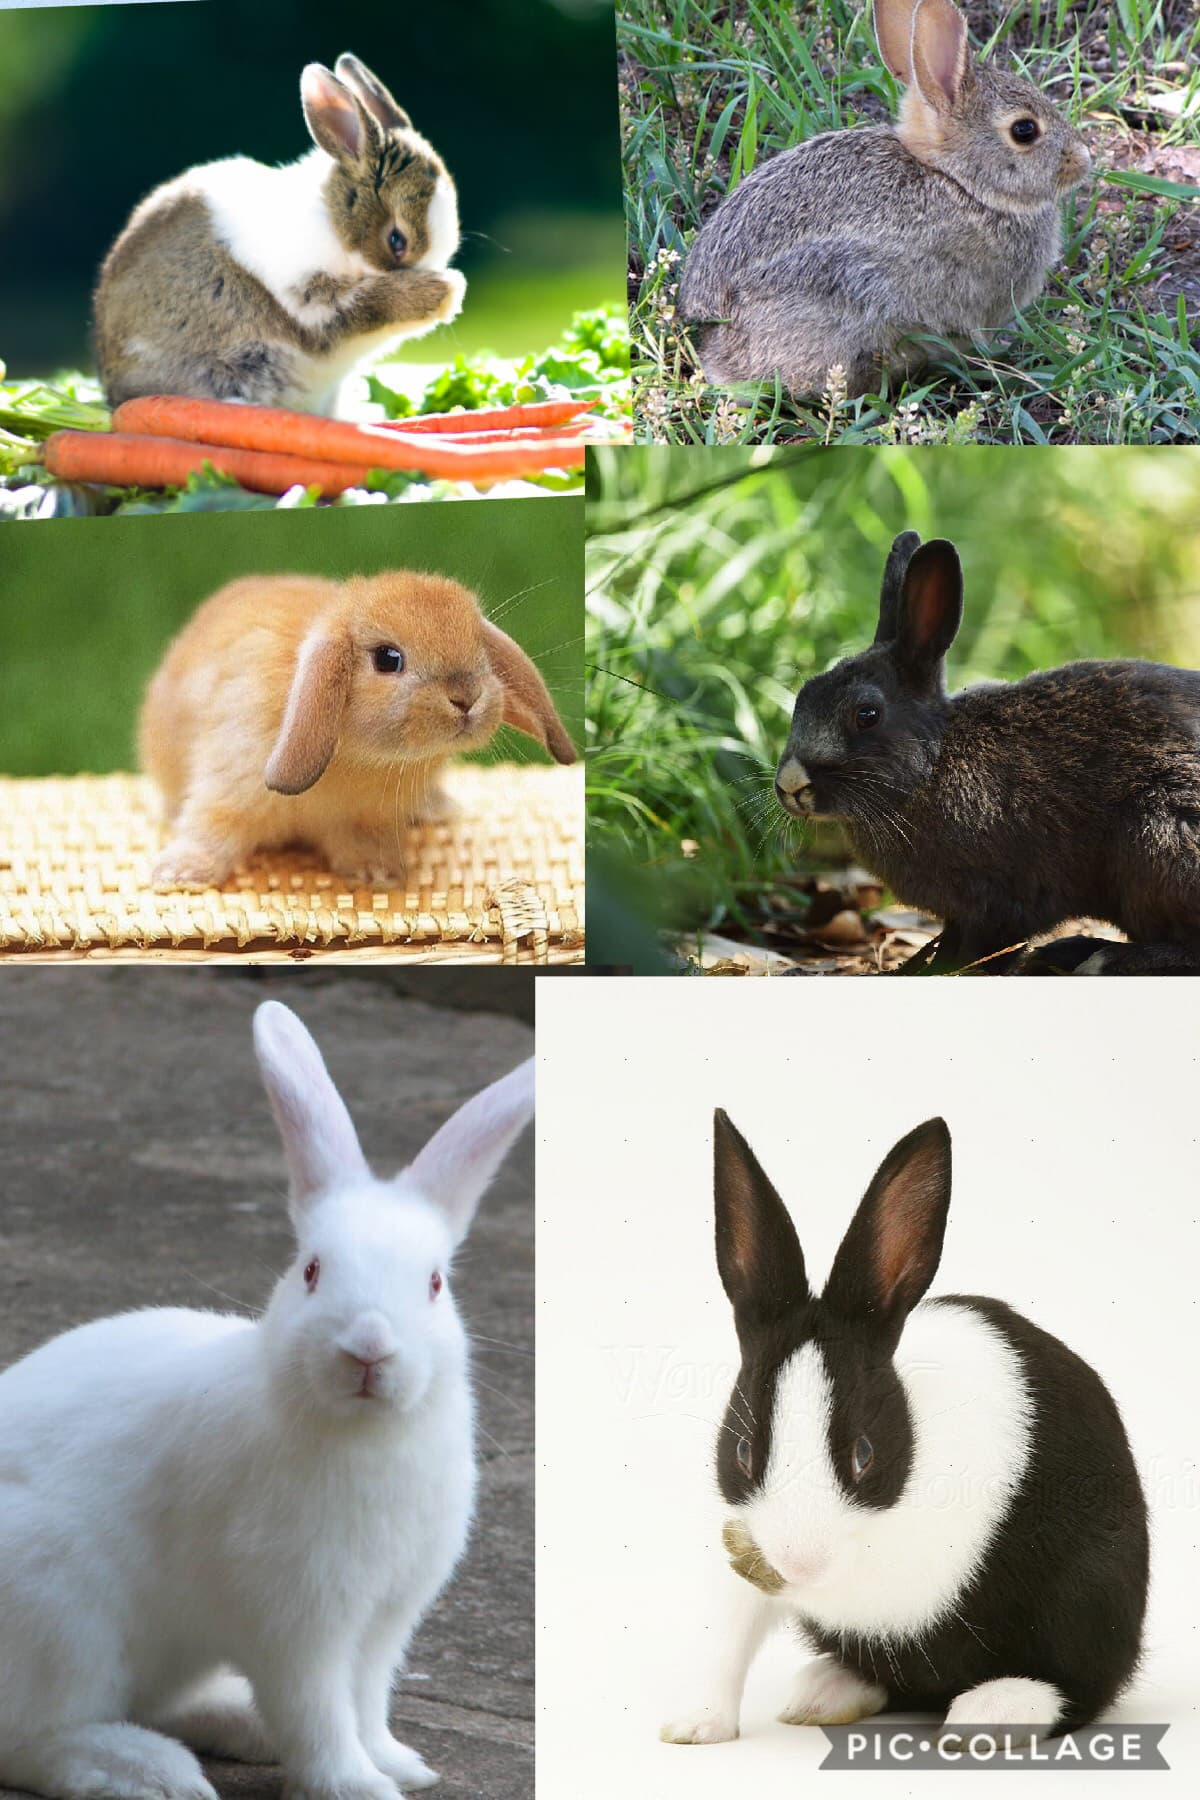 I saw a very cute bunny today that looks like the first picture which one do you think is the cutest ?